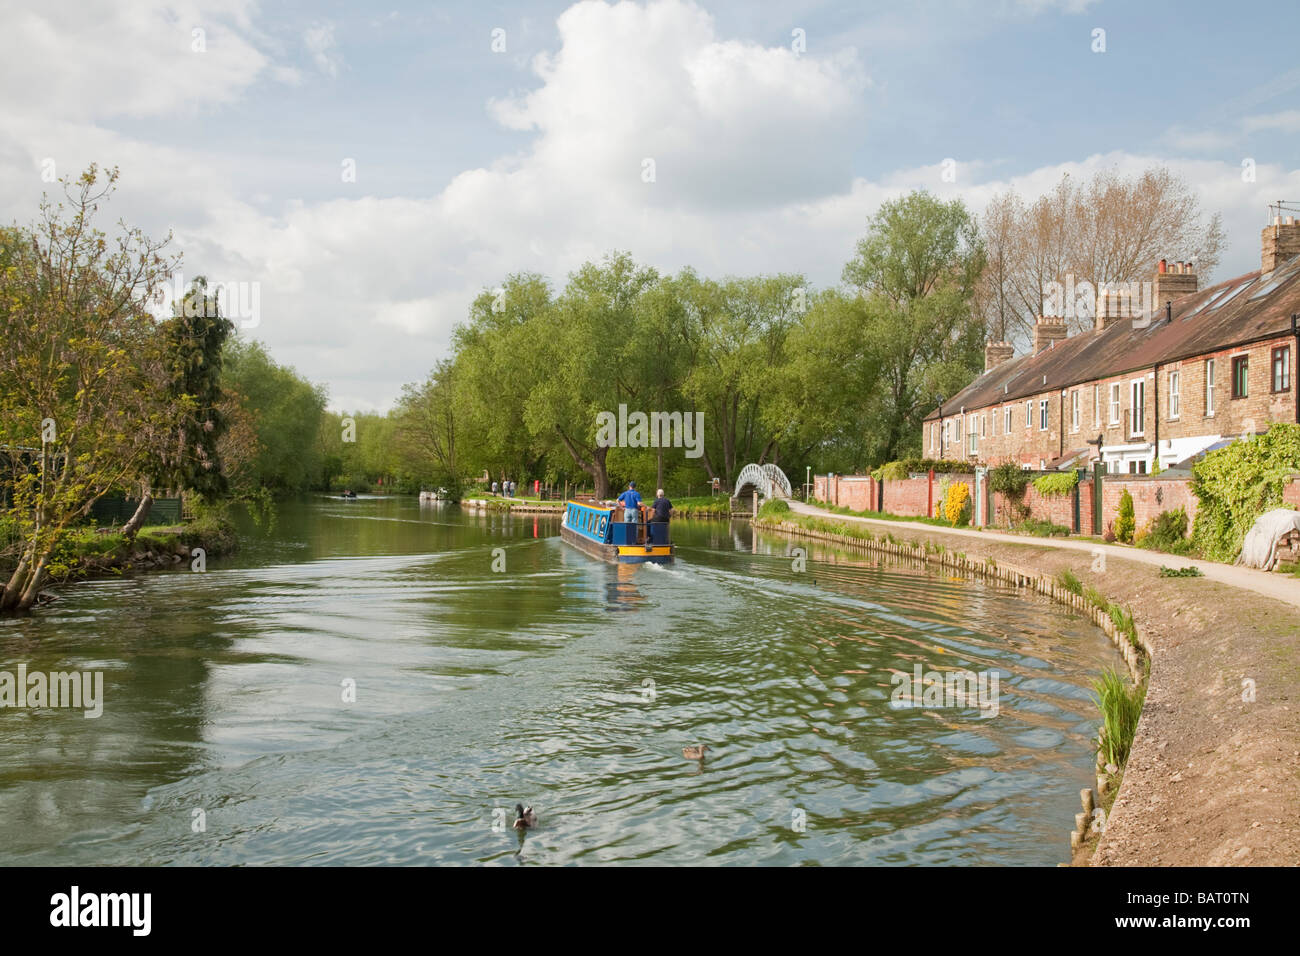 Narrowboat cruising along the River Thames at Osney in Oxford Uk - Stock Image